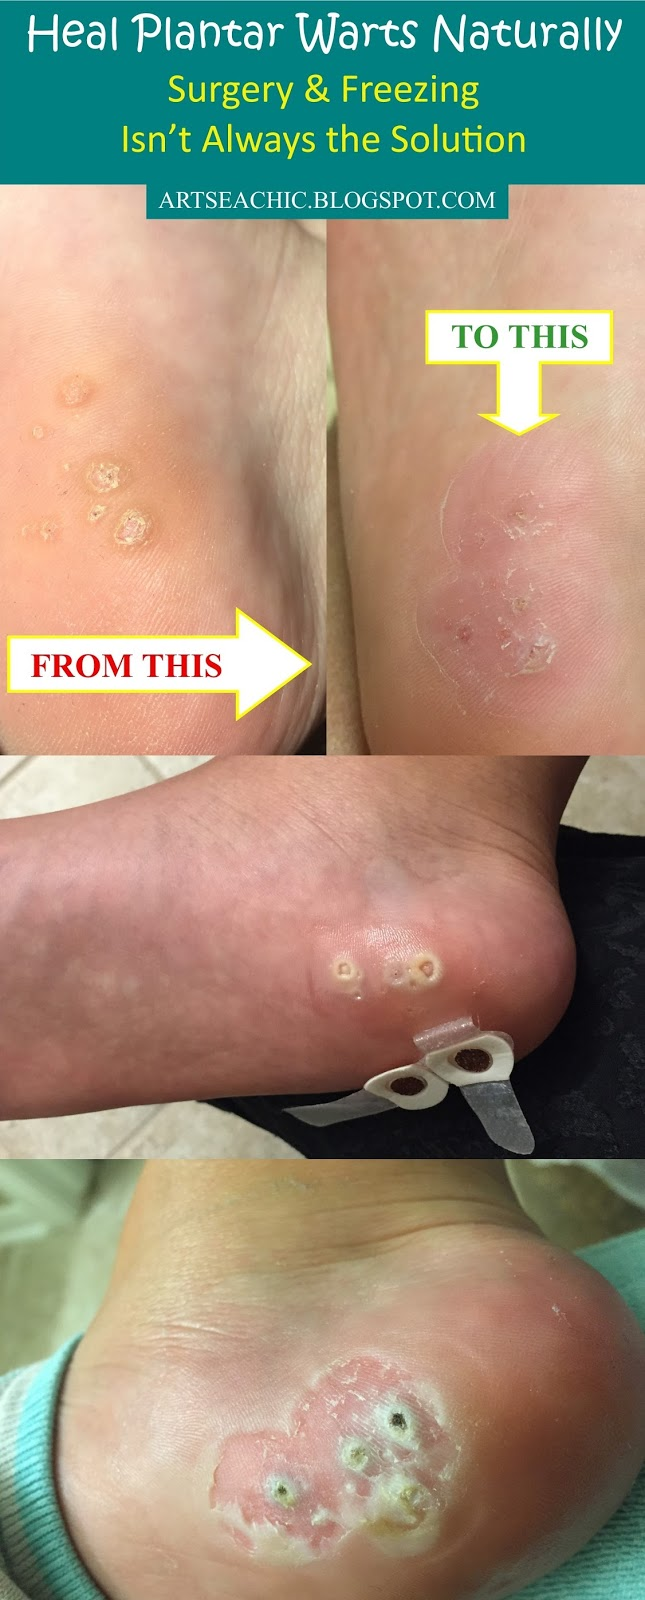 How To Remove Plantar Warts Naturally Artsea Chic